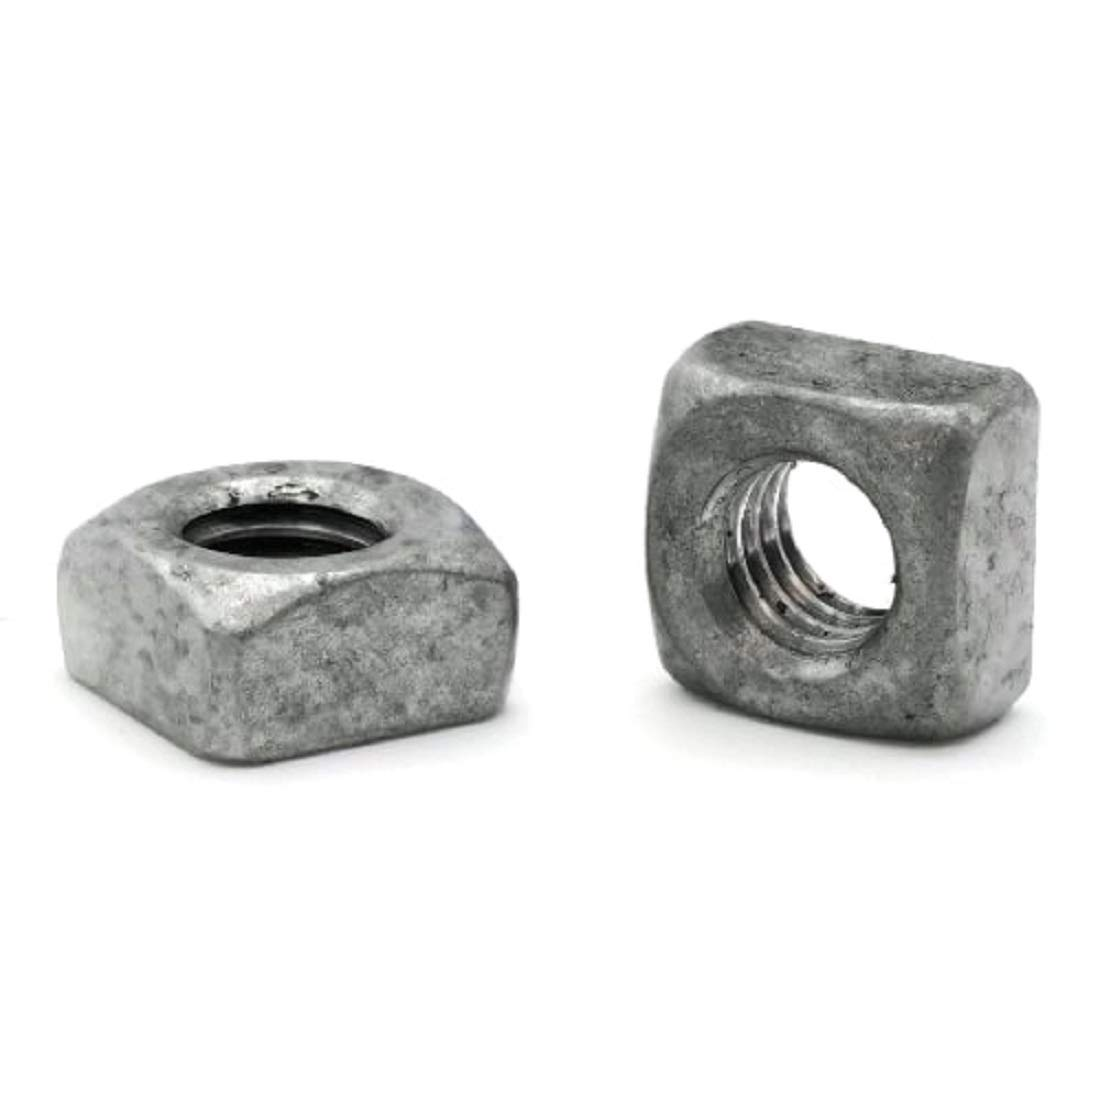 Square Nuts Hot Dipped Galvanized Grade 2-1/4